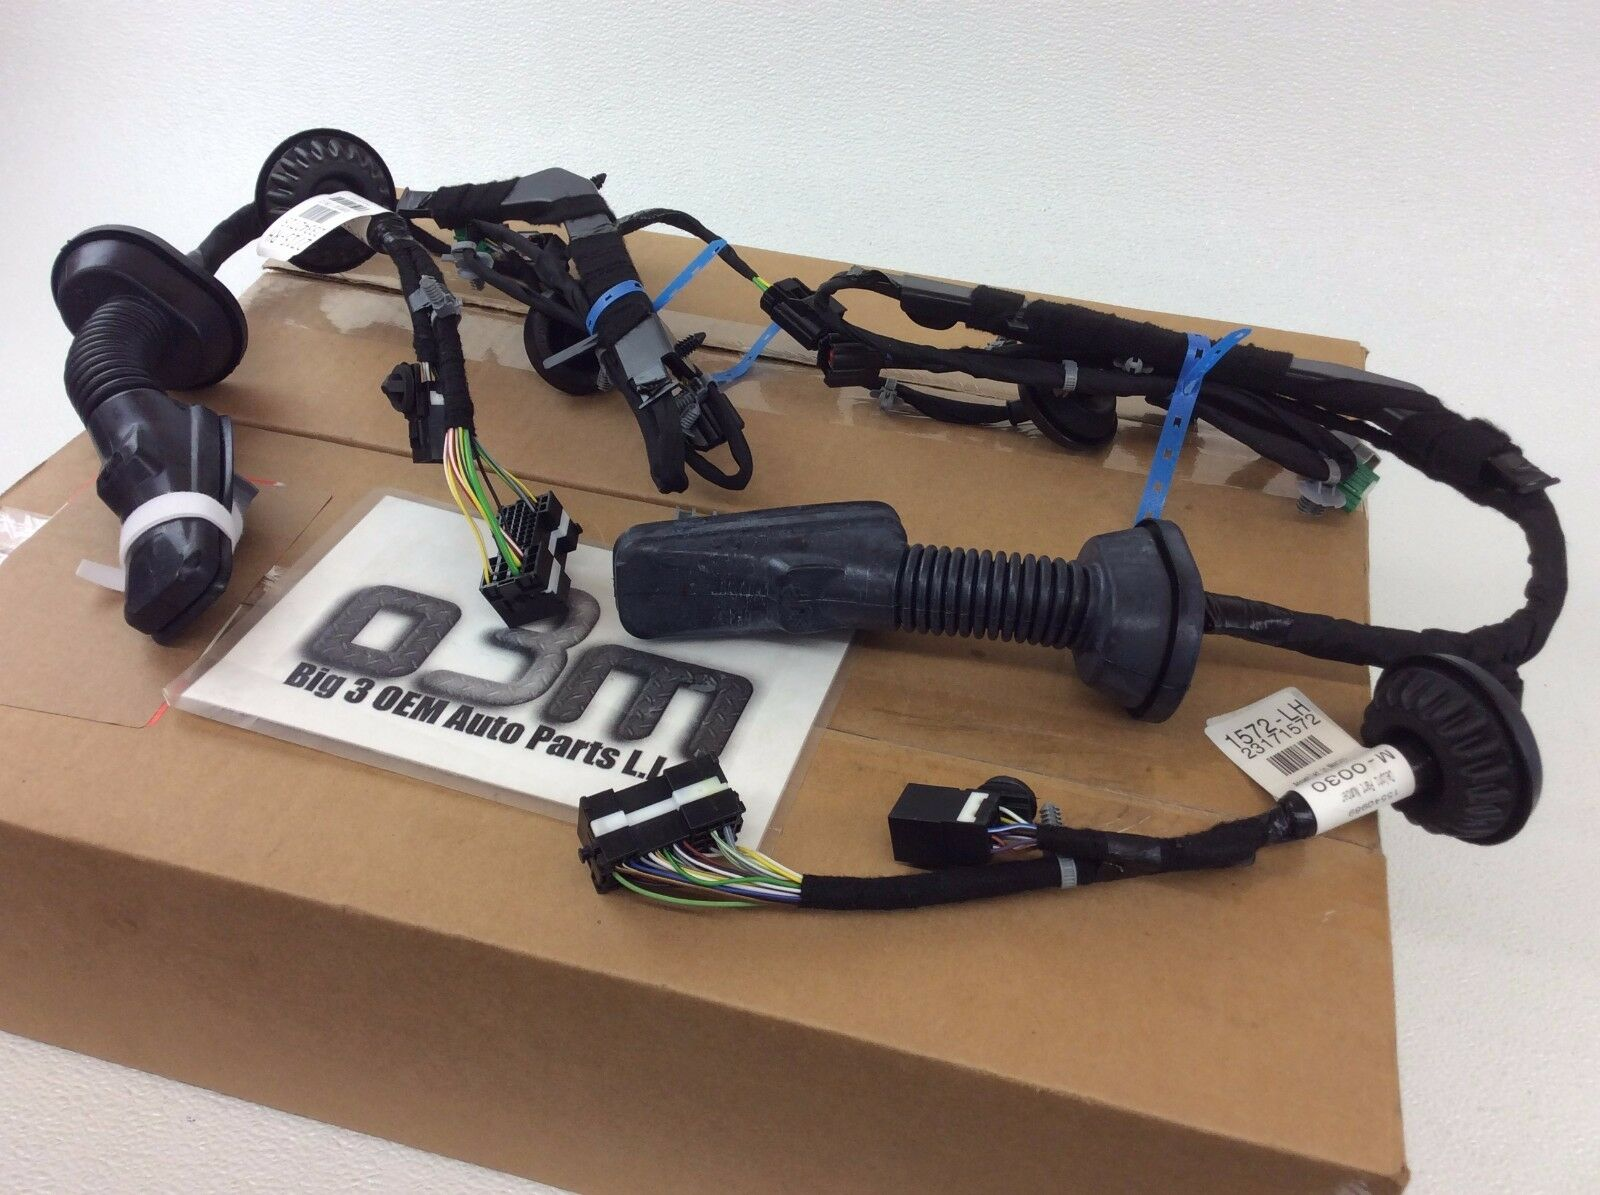 2014 2016 Chevrolet Silverado Gmc Sierra Trailer Tow Mirror Wiring Harness Harnesses New 1 Of 5only 4 Available